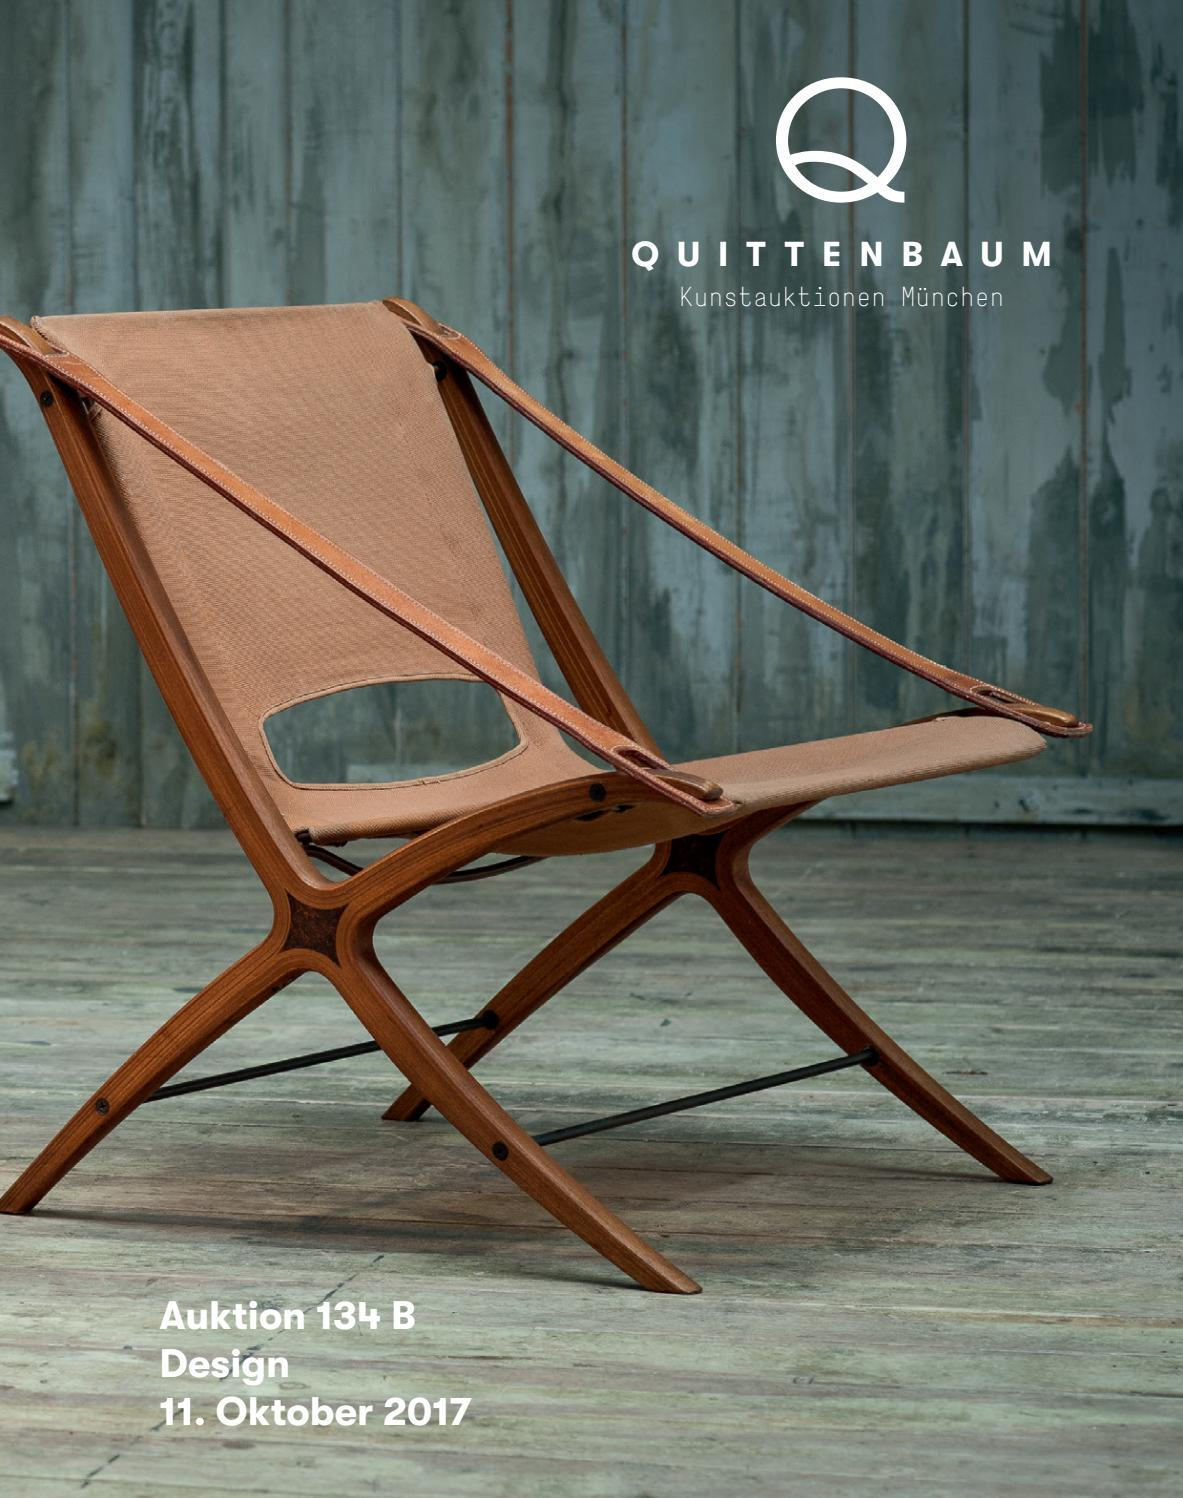 Auction 134 B | Design | Quittenbaum Art Auctions By Quittenbaum  Kunstauktionen GmbH   Issuu